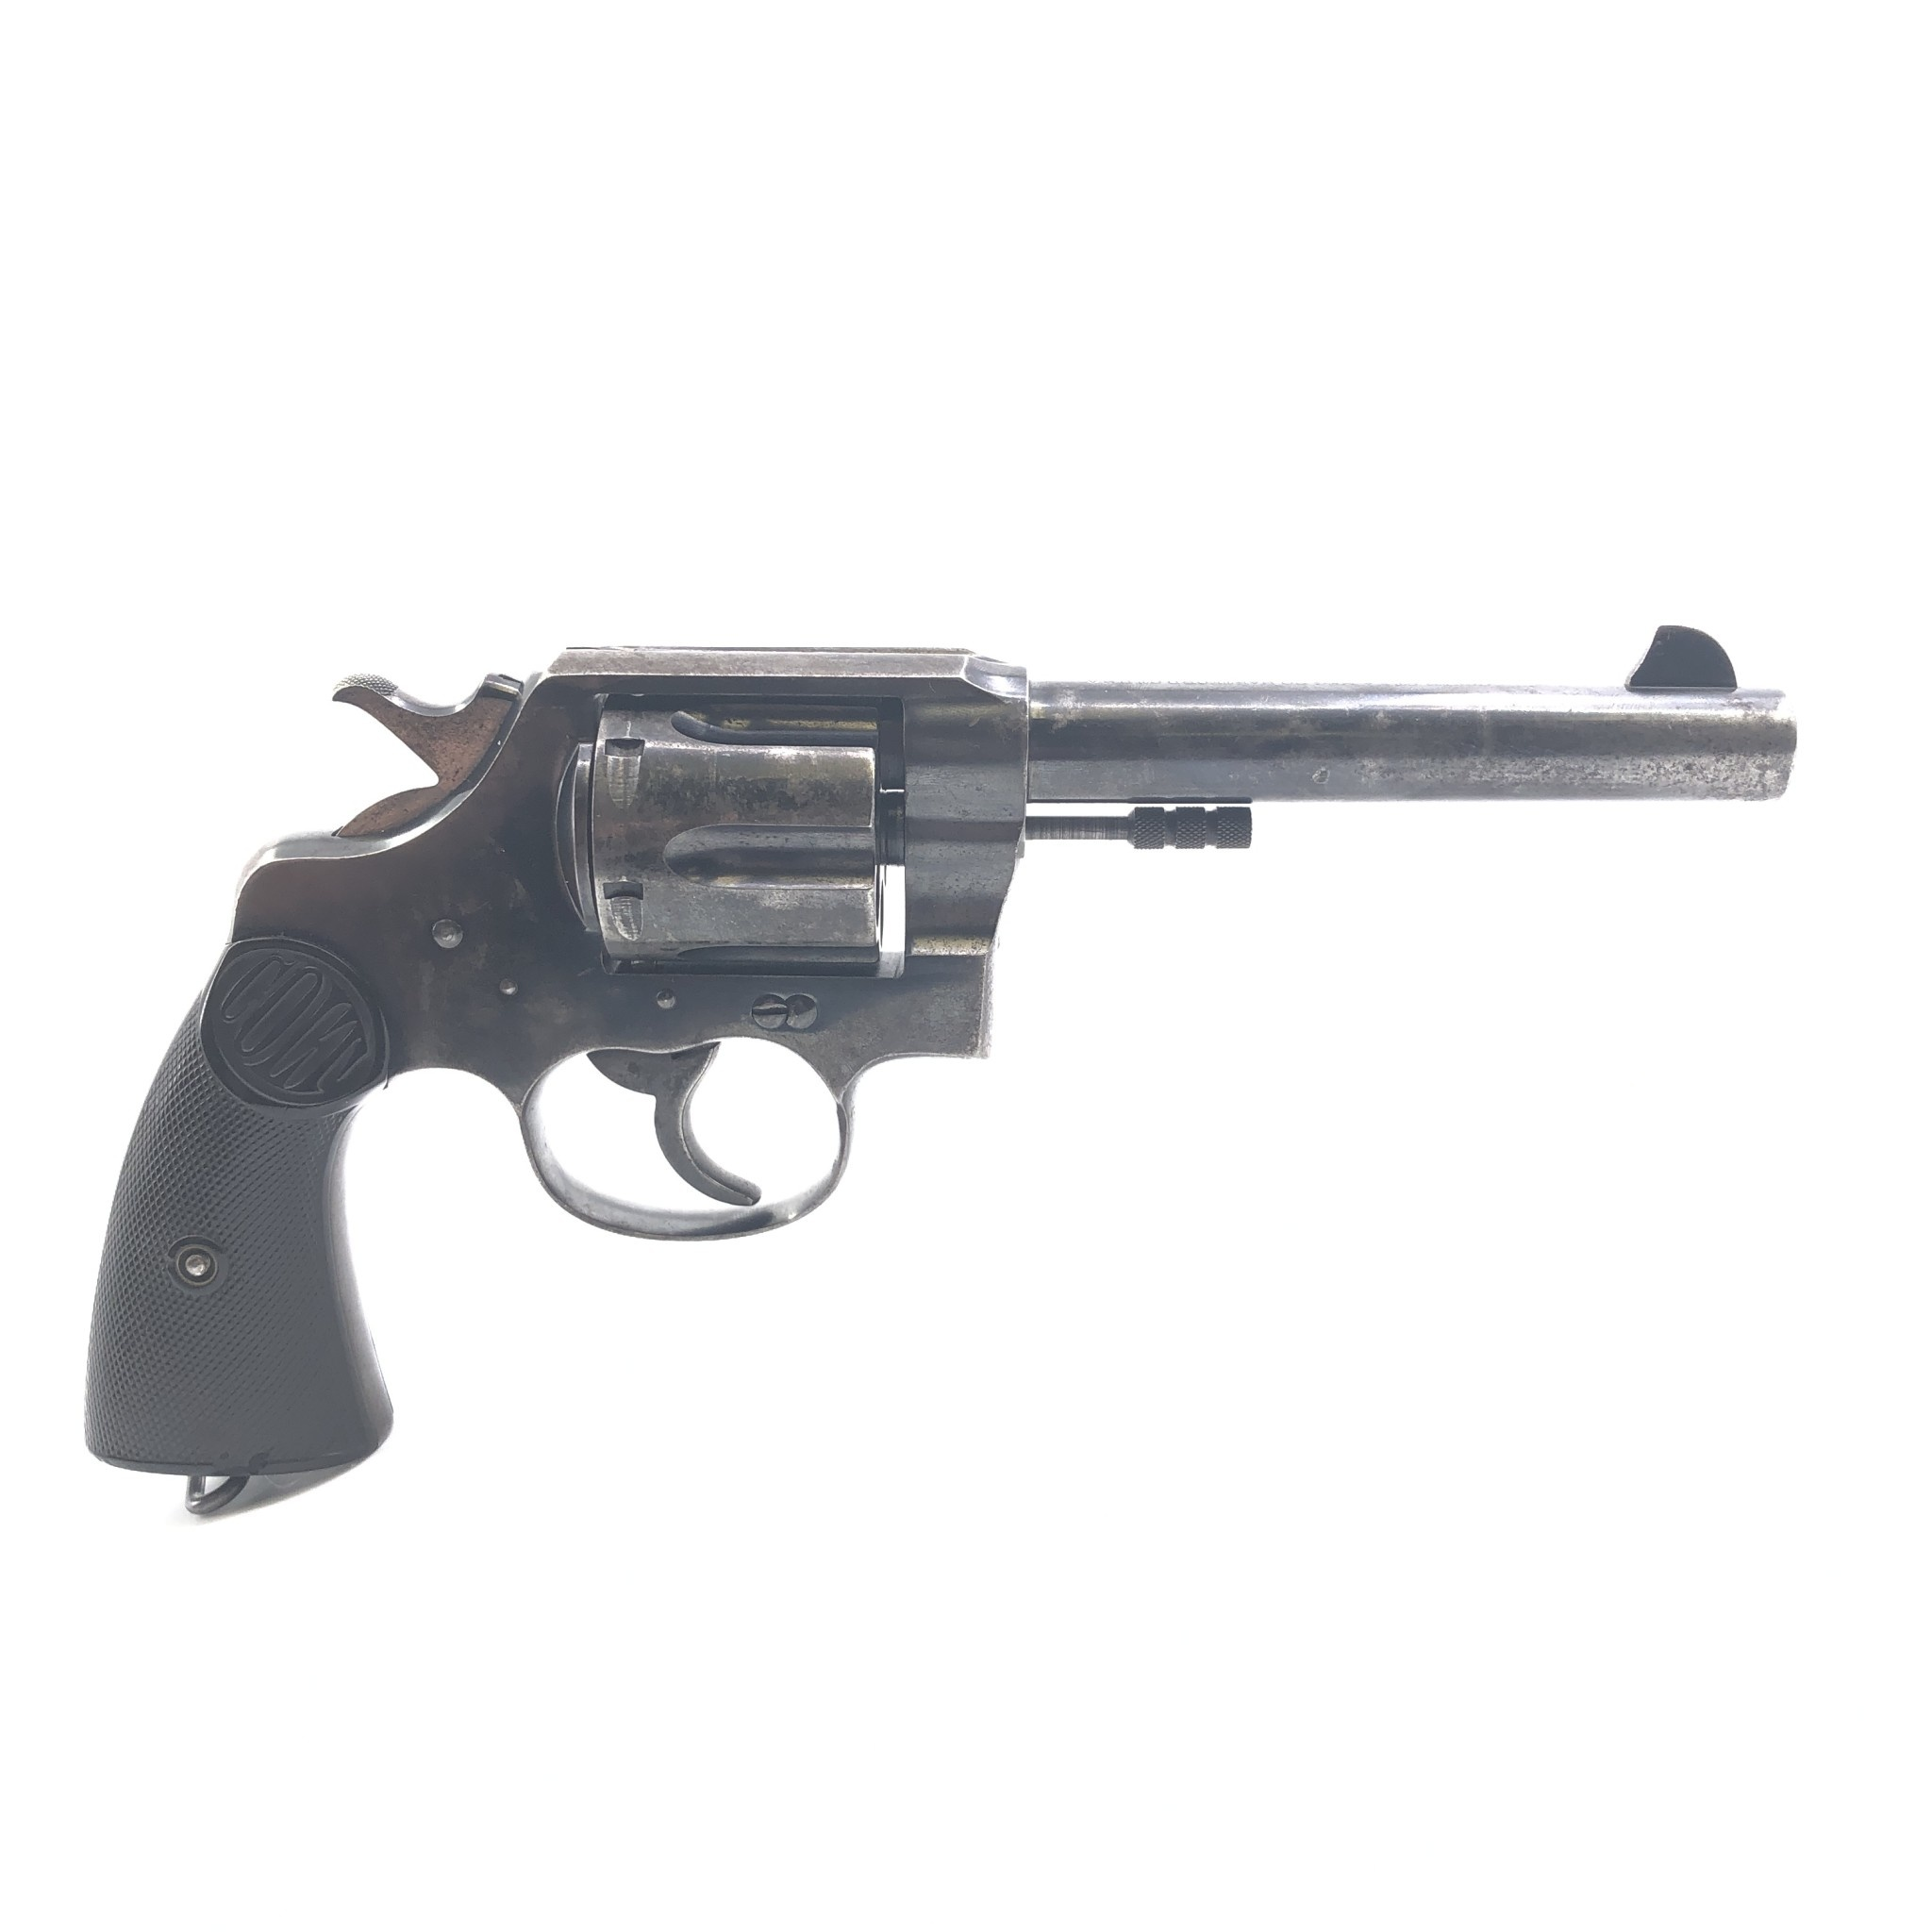 COLT USED COLT NEW SERVICE 455 ELEY